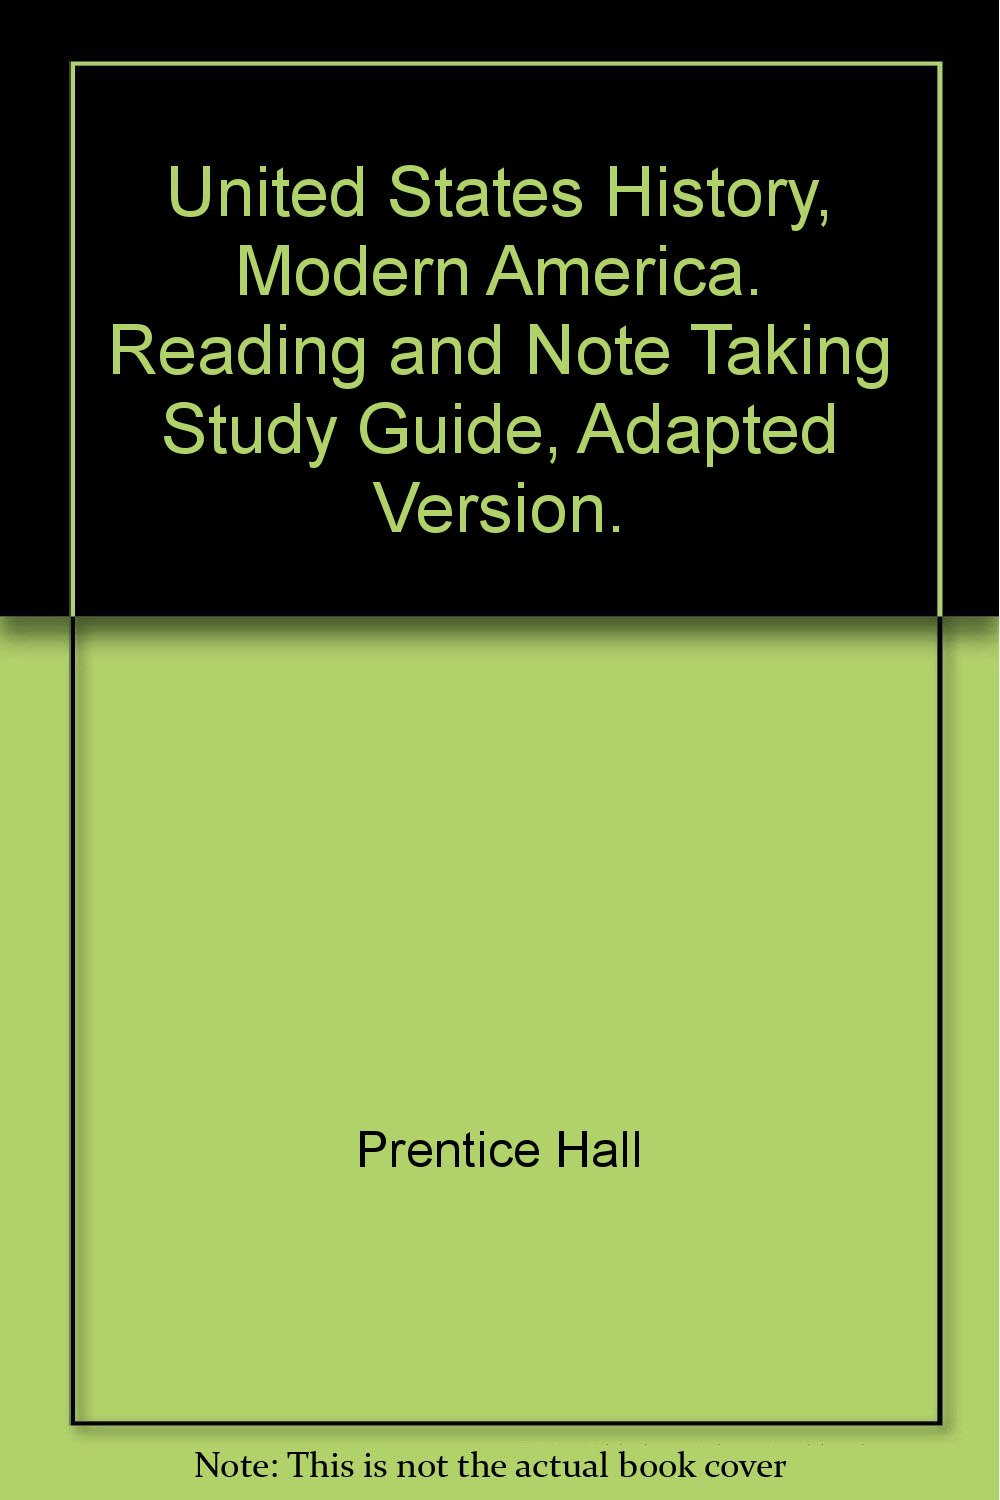 United States History, Modern America. Reading and Note Taking Study Guide,  Adapted Version.: 9780132026338: Amazon.com: Books